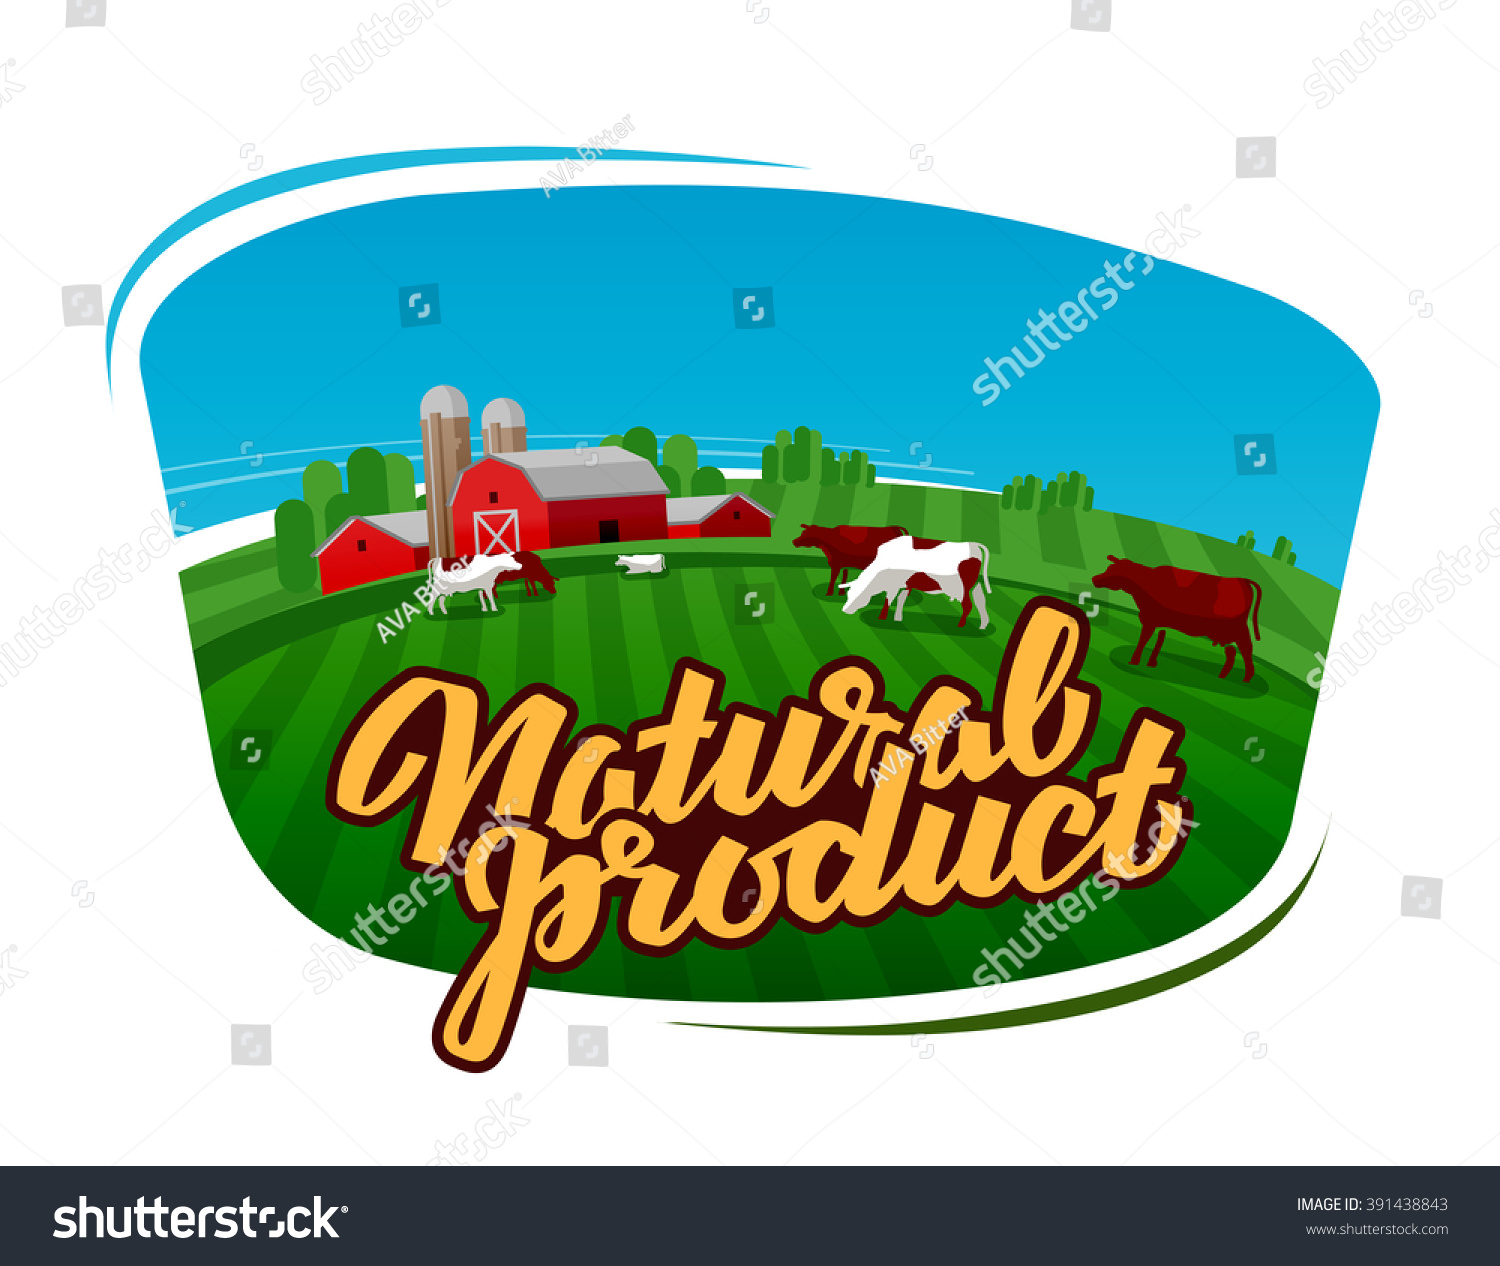 Cow Milk Vector Logo Dairy Farm 391438843 on animal farm landscape